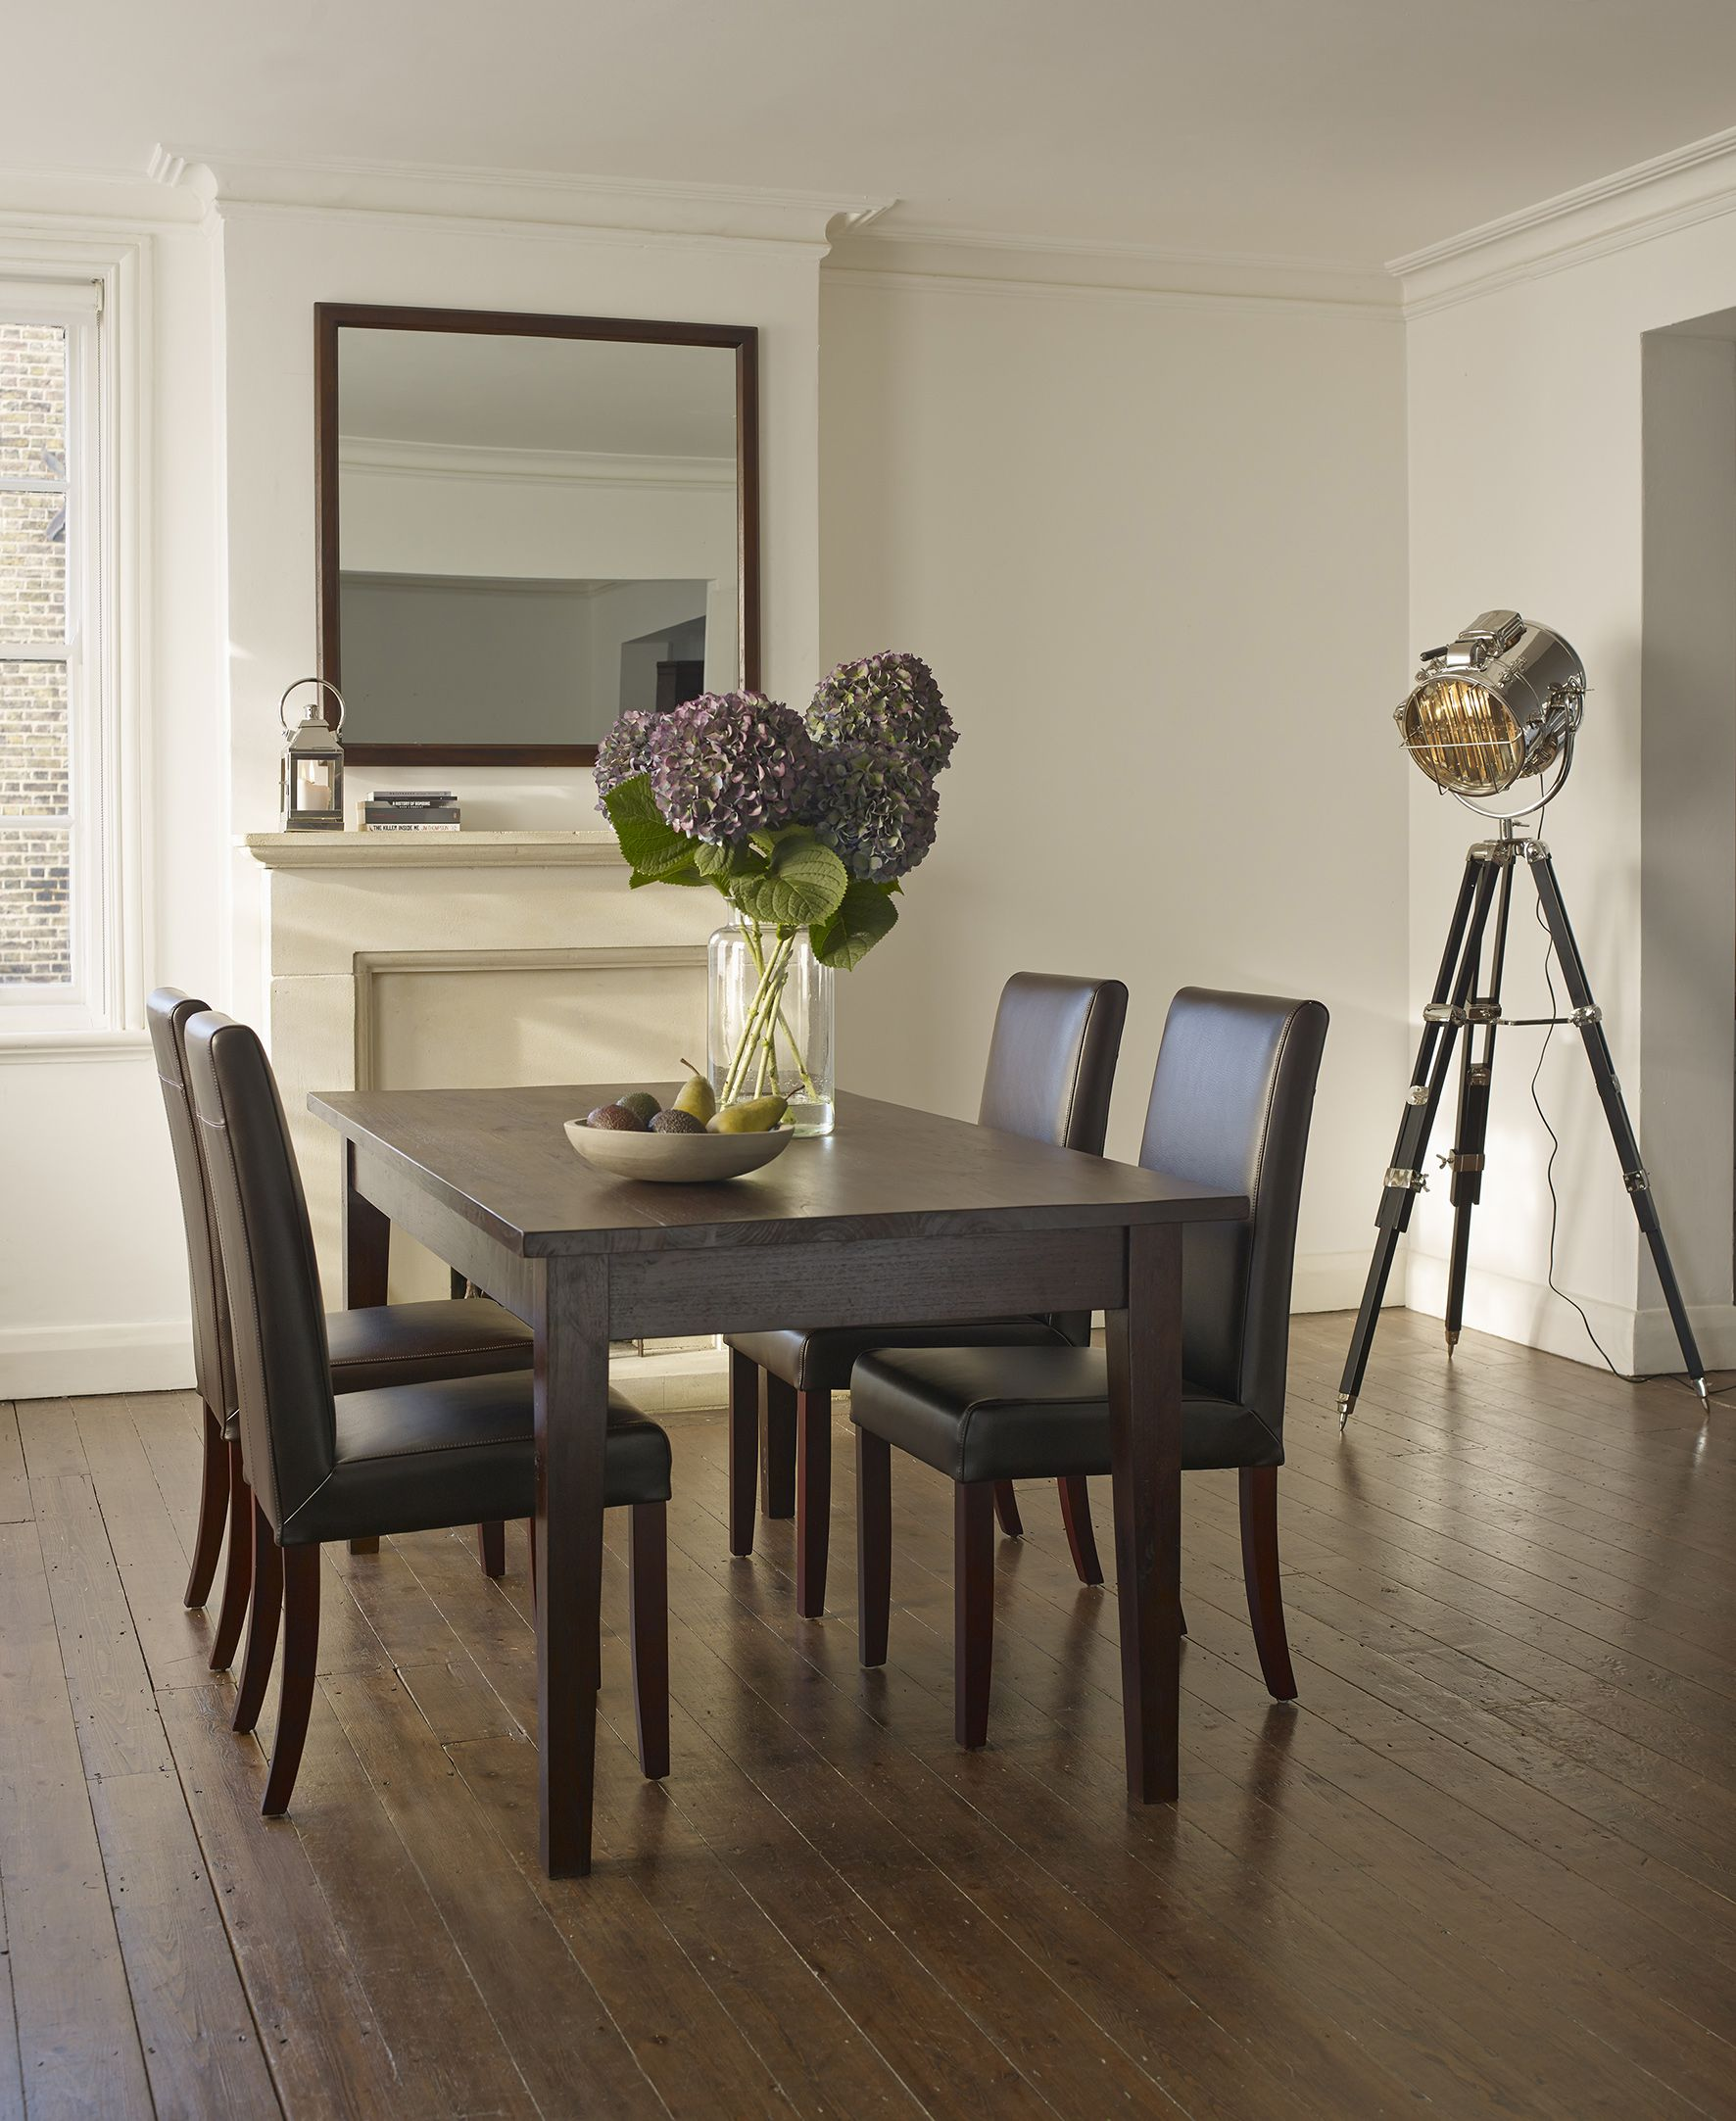 Malang Dark Brown Extendable Dining Table | Teak dining ...